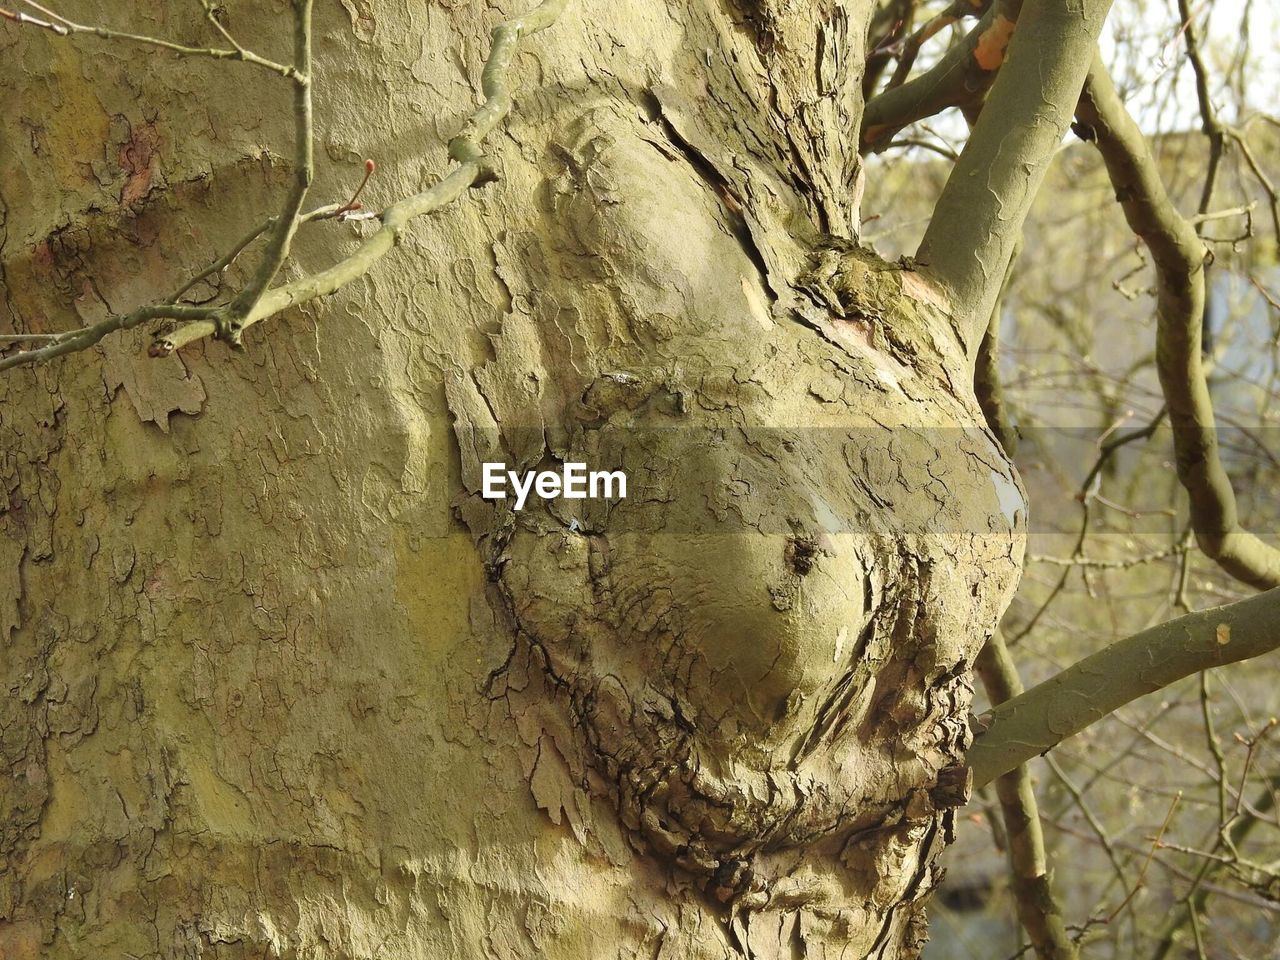 tree, tree trunk, branch, no people, close-up, day, outdoors, nature, textured, animal themes